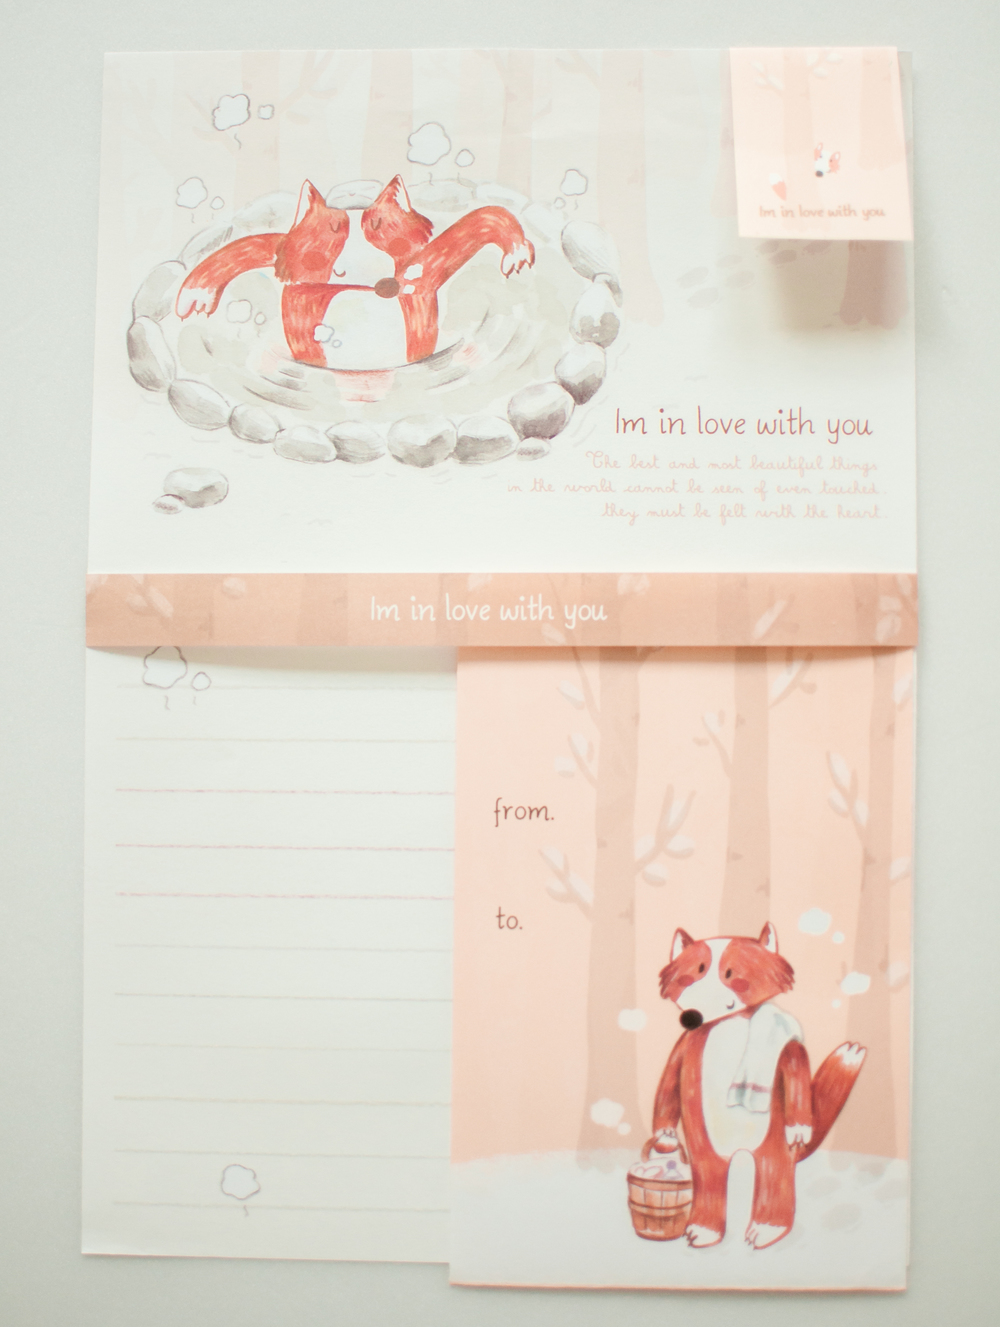 CityGirlSearchingStationeryStoreSouthKorea (5 of 39).jpg